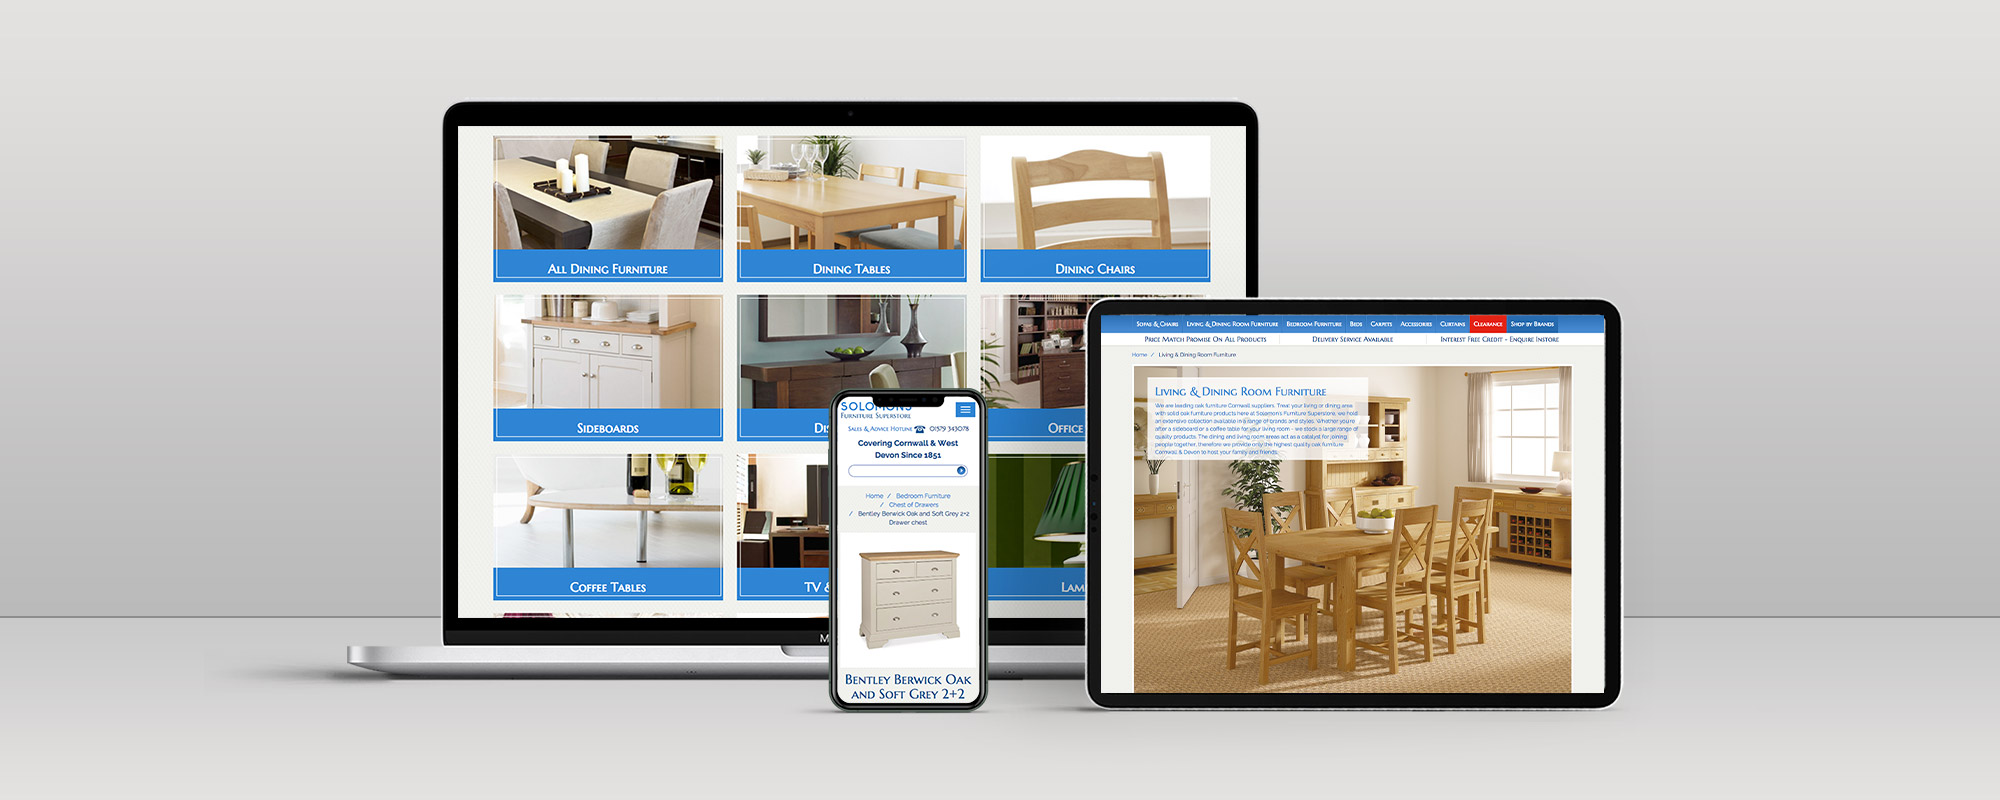 Solomons Furniture Website Design on 3 Devices